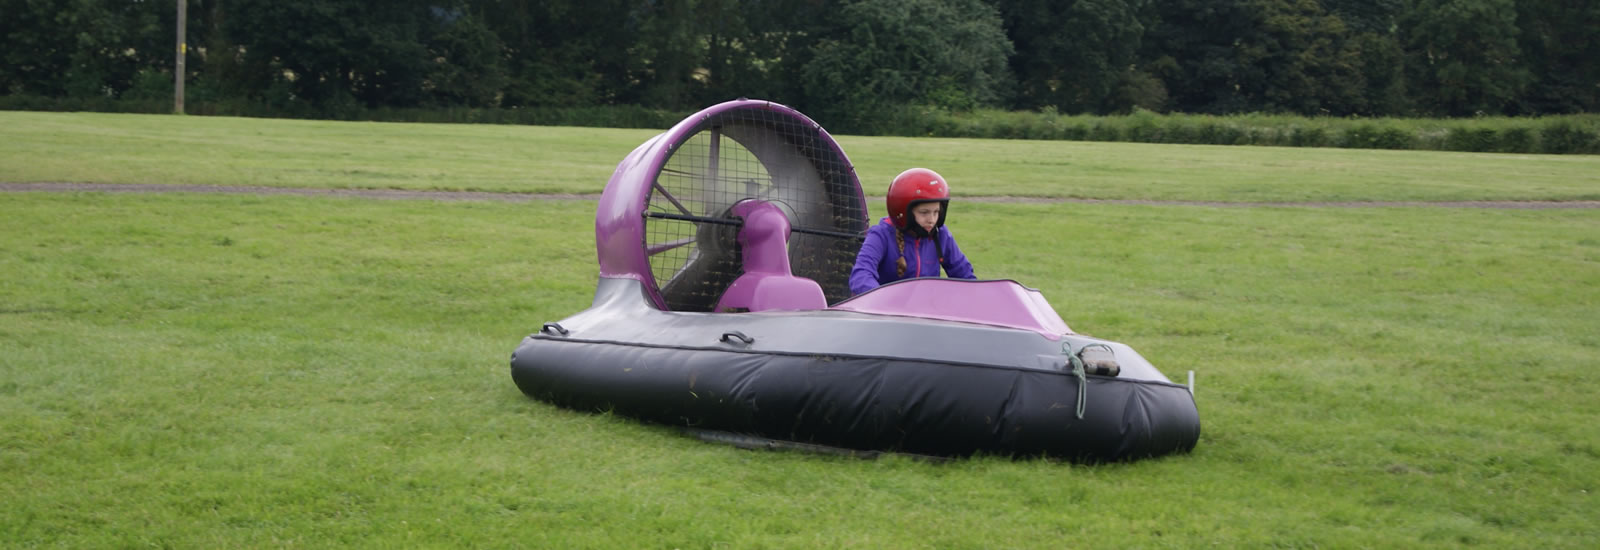 Flying a Hovercraft